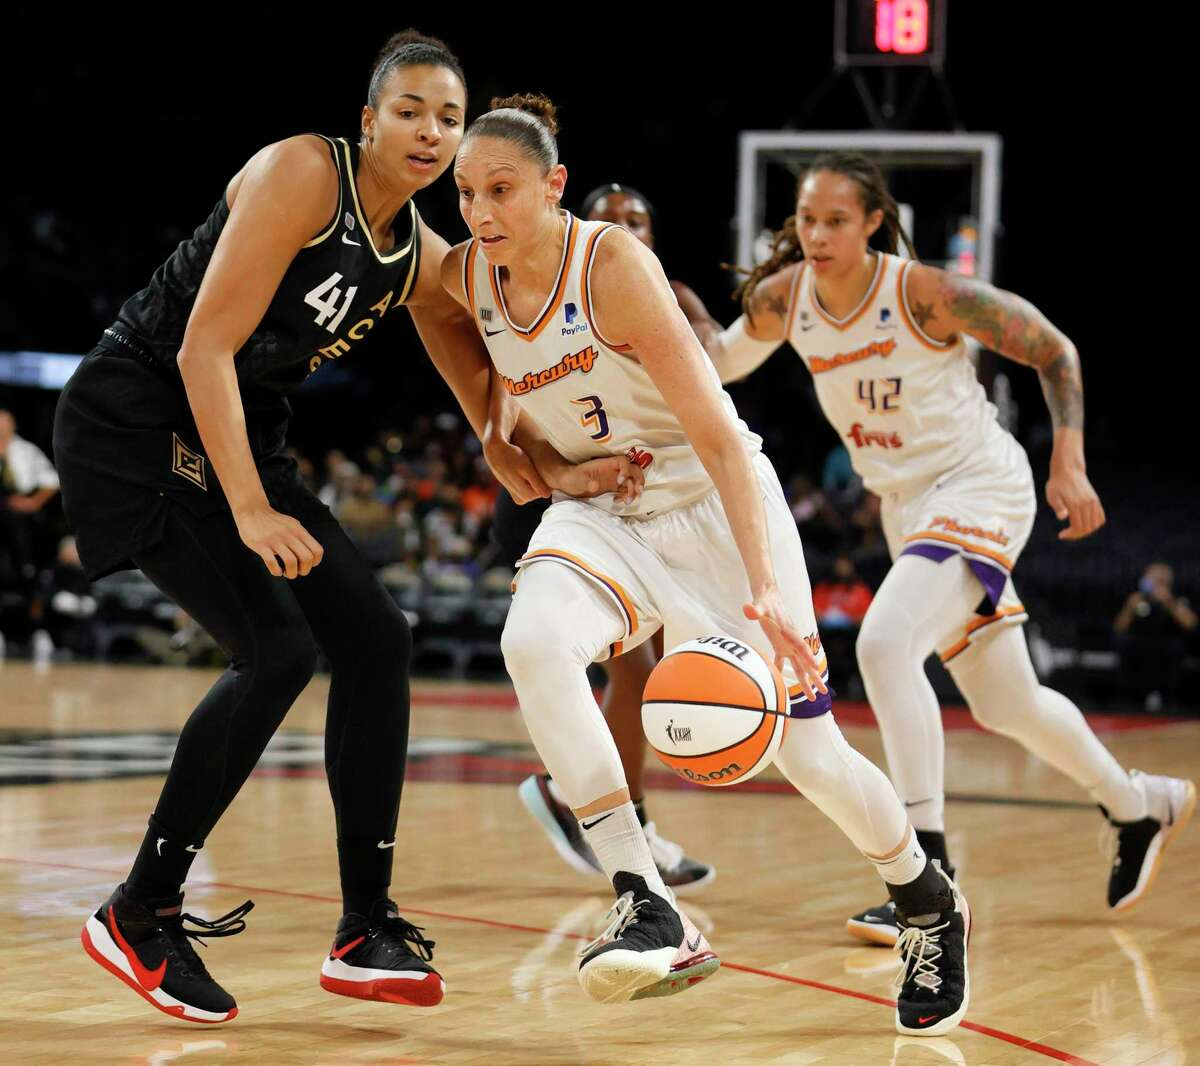 The Mercury's Diana Taurasi drives against the Aces' Kiah Stokes during Game 5 of the WNBA semifinals on Friday.